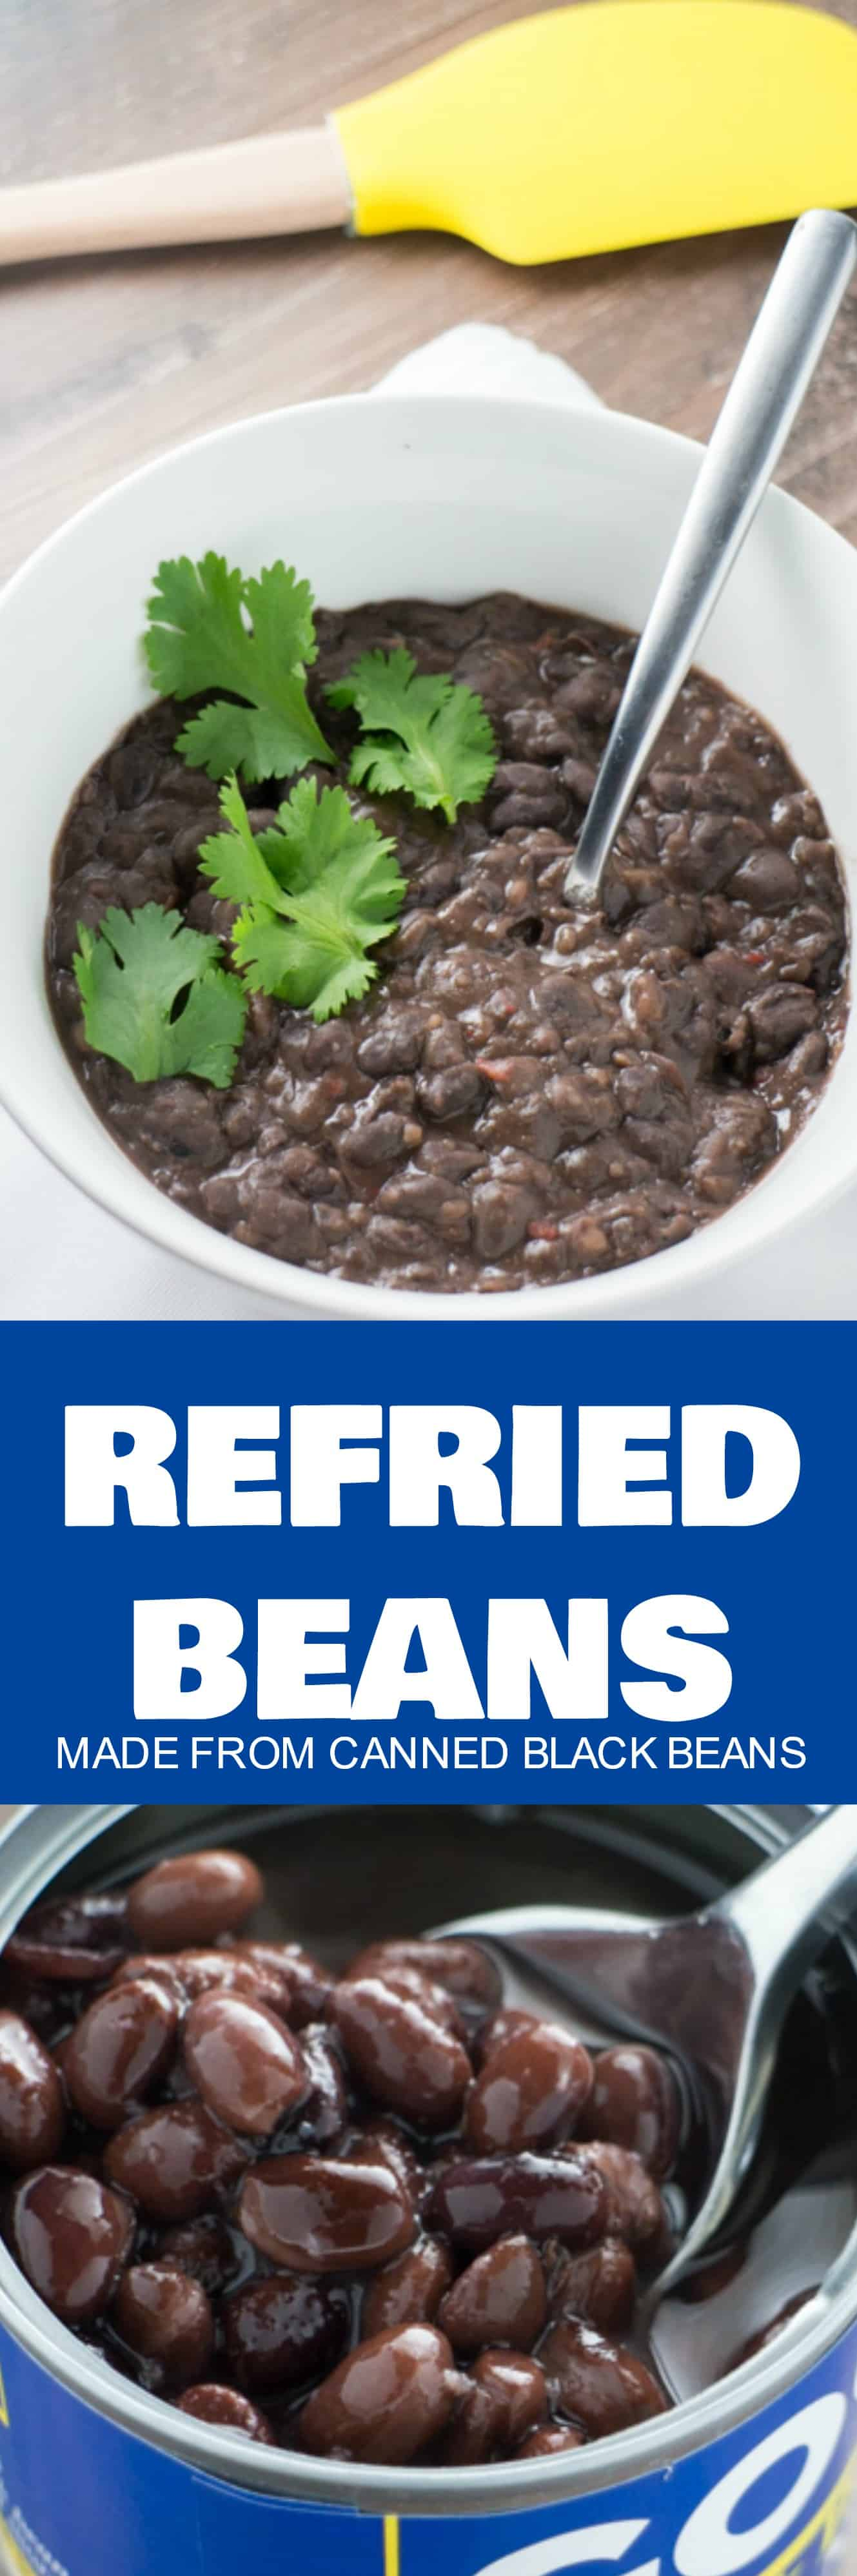 Easy Refried Beans Recipe made from canned black beans! These homemade beans only take 15 minutes! These refried beans taste like your favorite Mexican restaurant!  Perfect for Taco night meals!